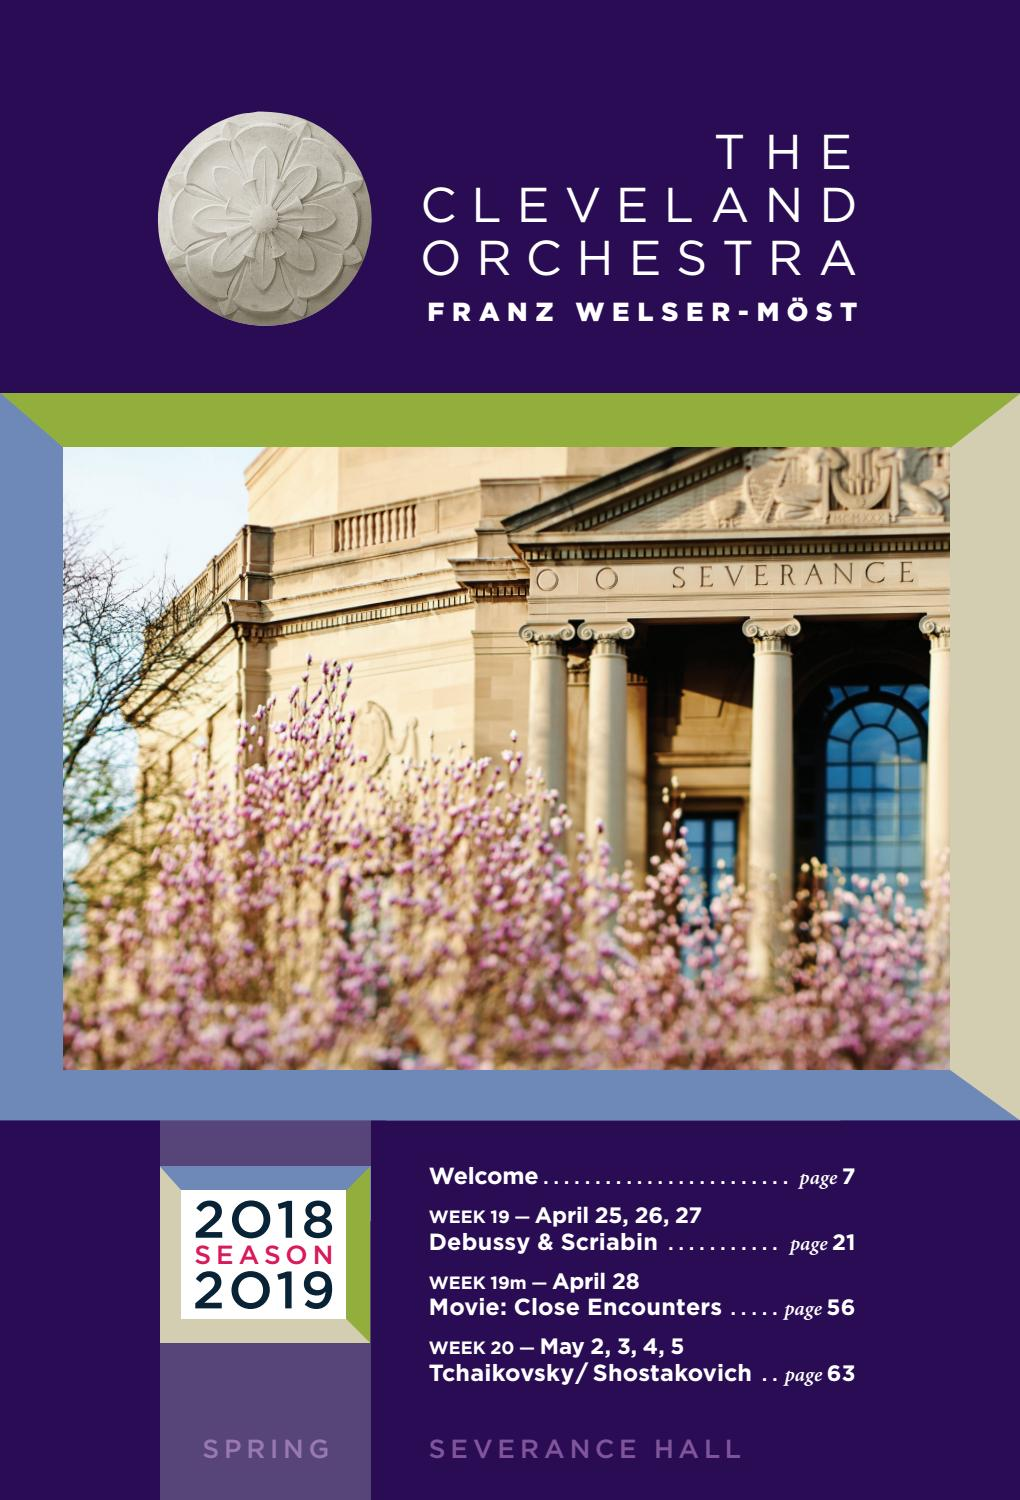 The Cleveland Orchestra April 25-28, May 2-5 Concerts by